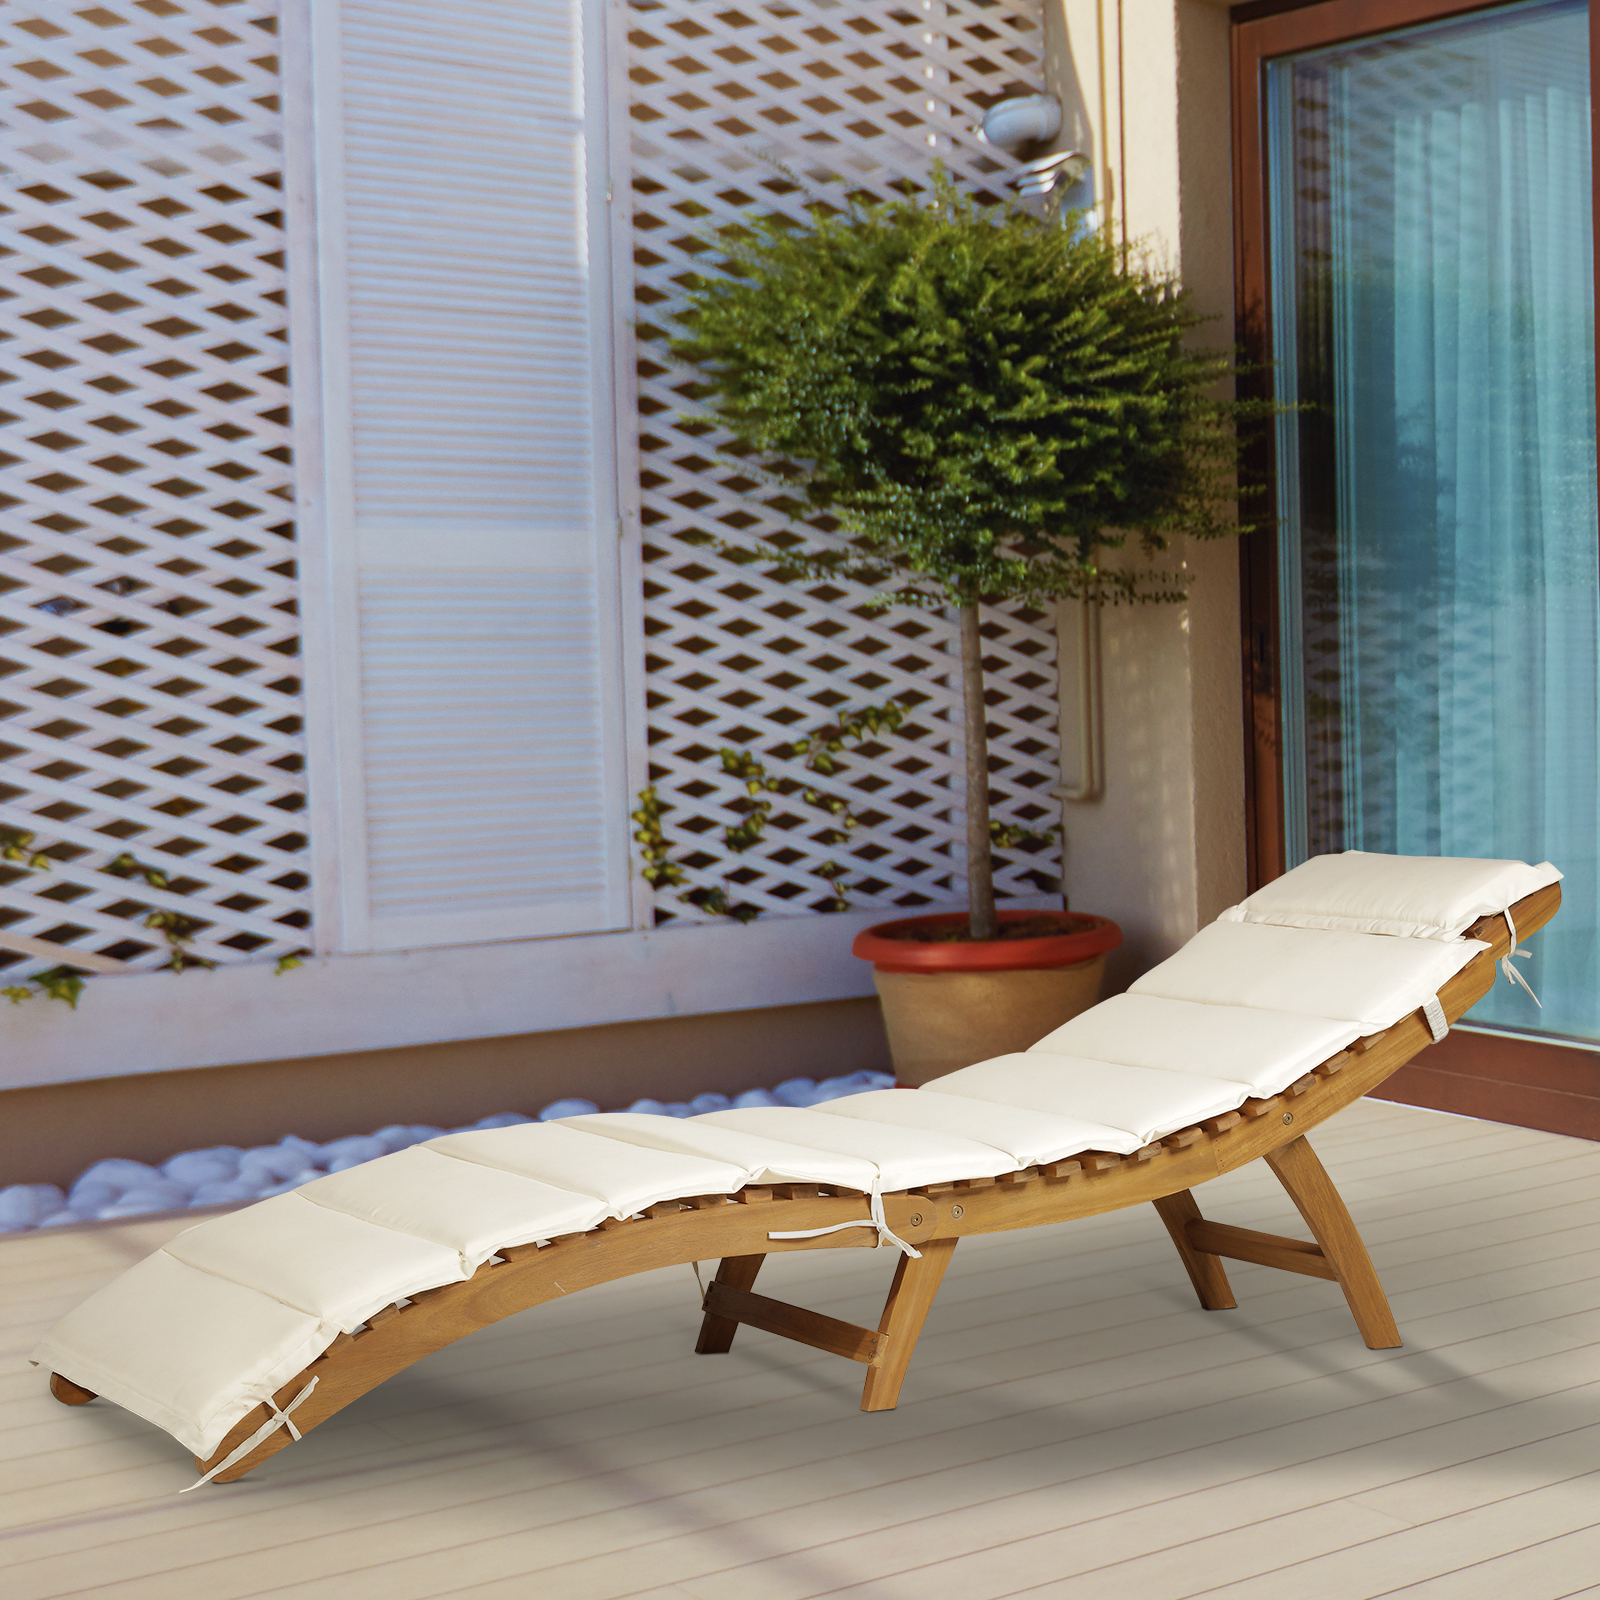 Most Up To Date Outdoor Acacia Wood Chaise Lounges With Cushion Throughout Details About Outsunny Acacia Wood Folding Outdoor Chaise Sun Lounge Chair With Cushion Pad (View 14 of 25)